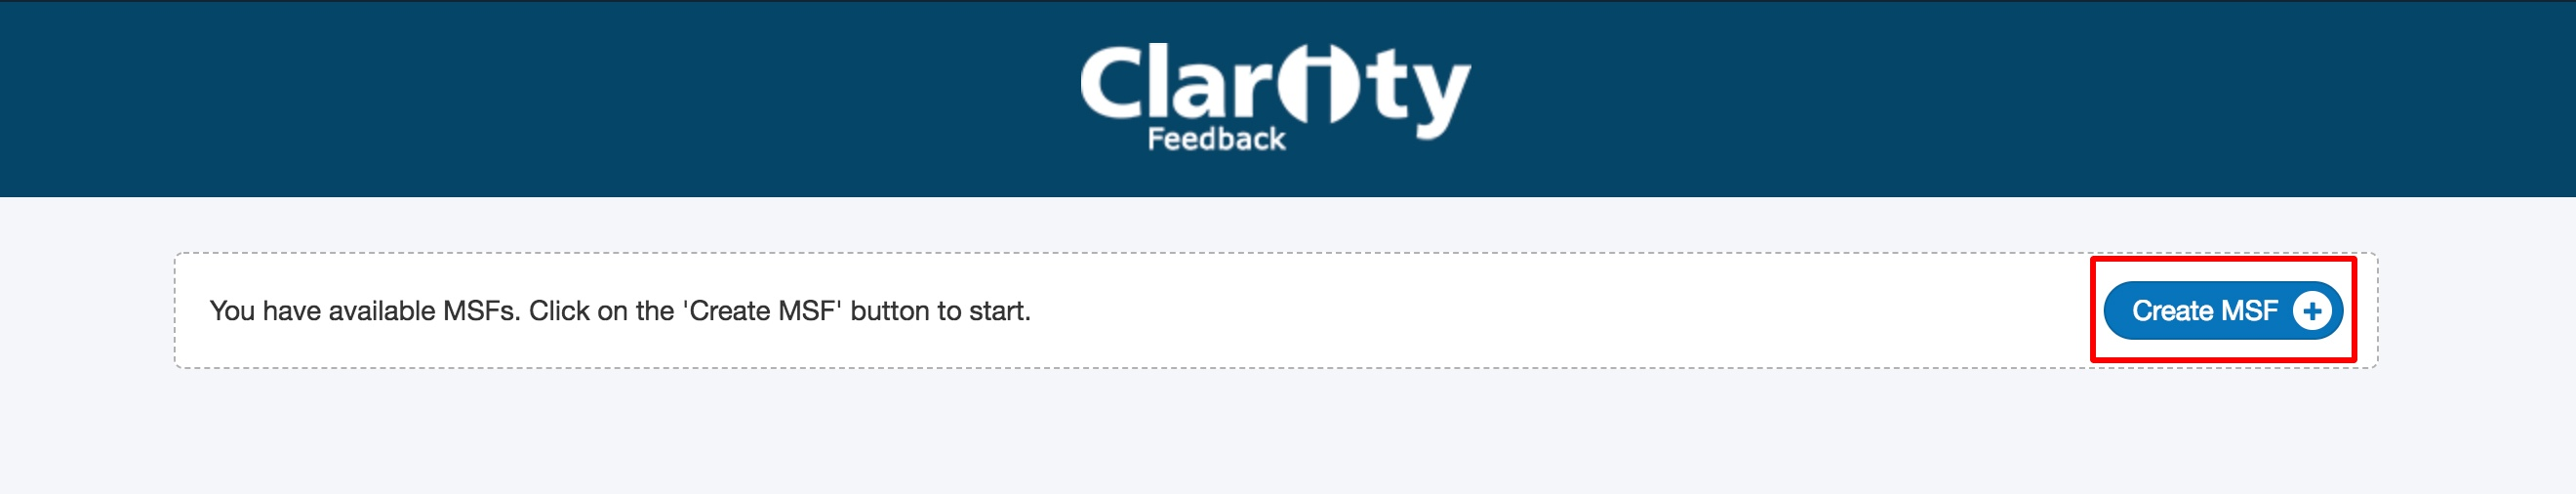 Screenshot showing the create MSF feature in Clarity